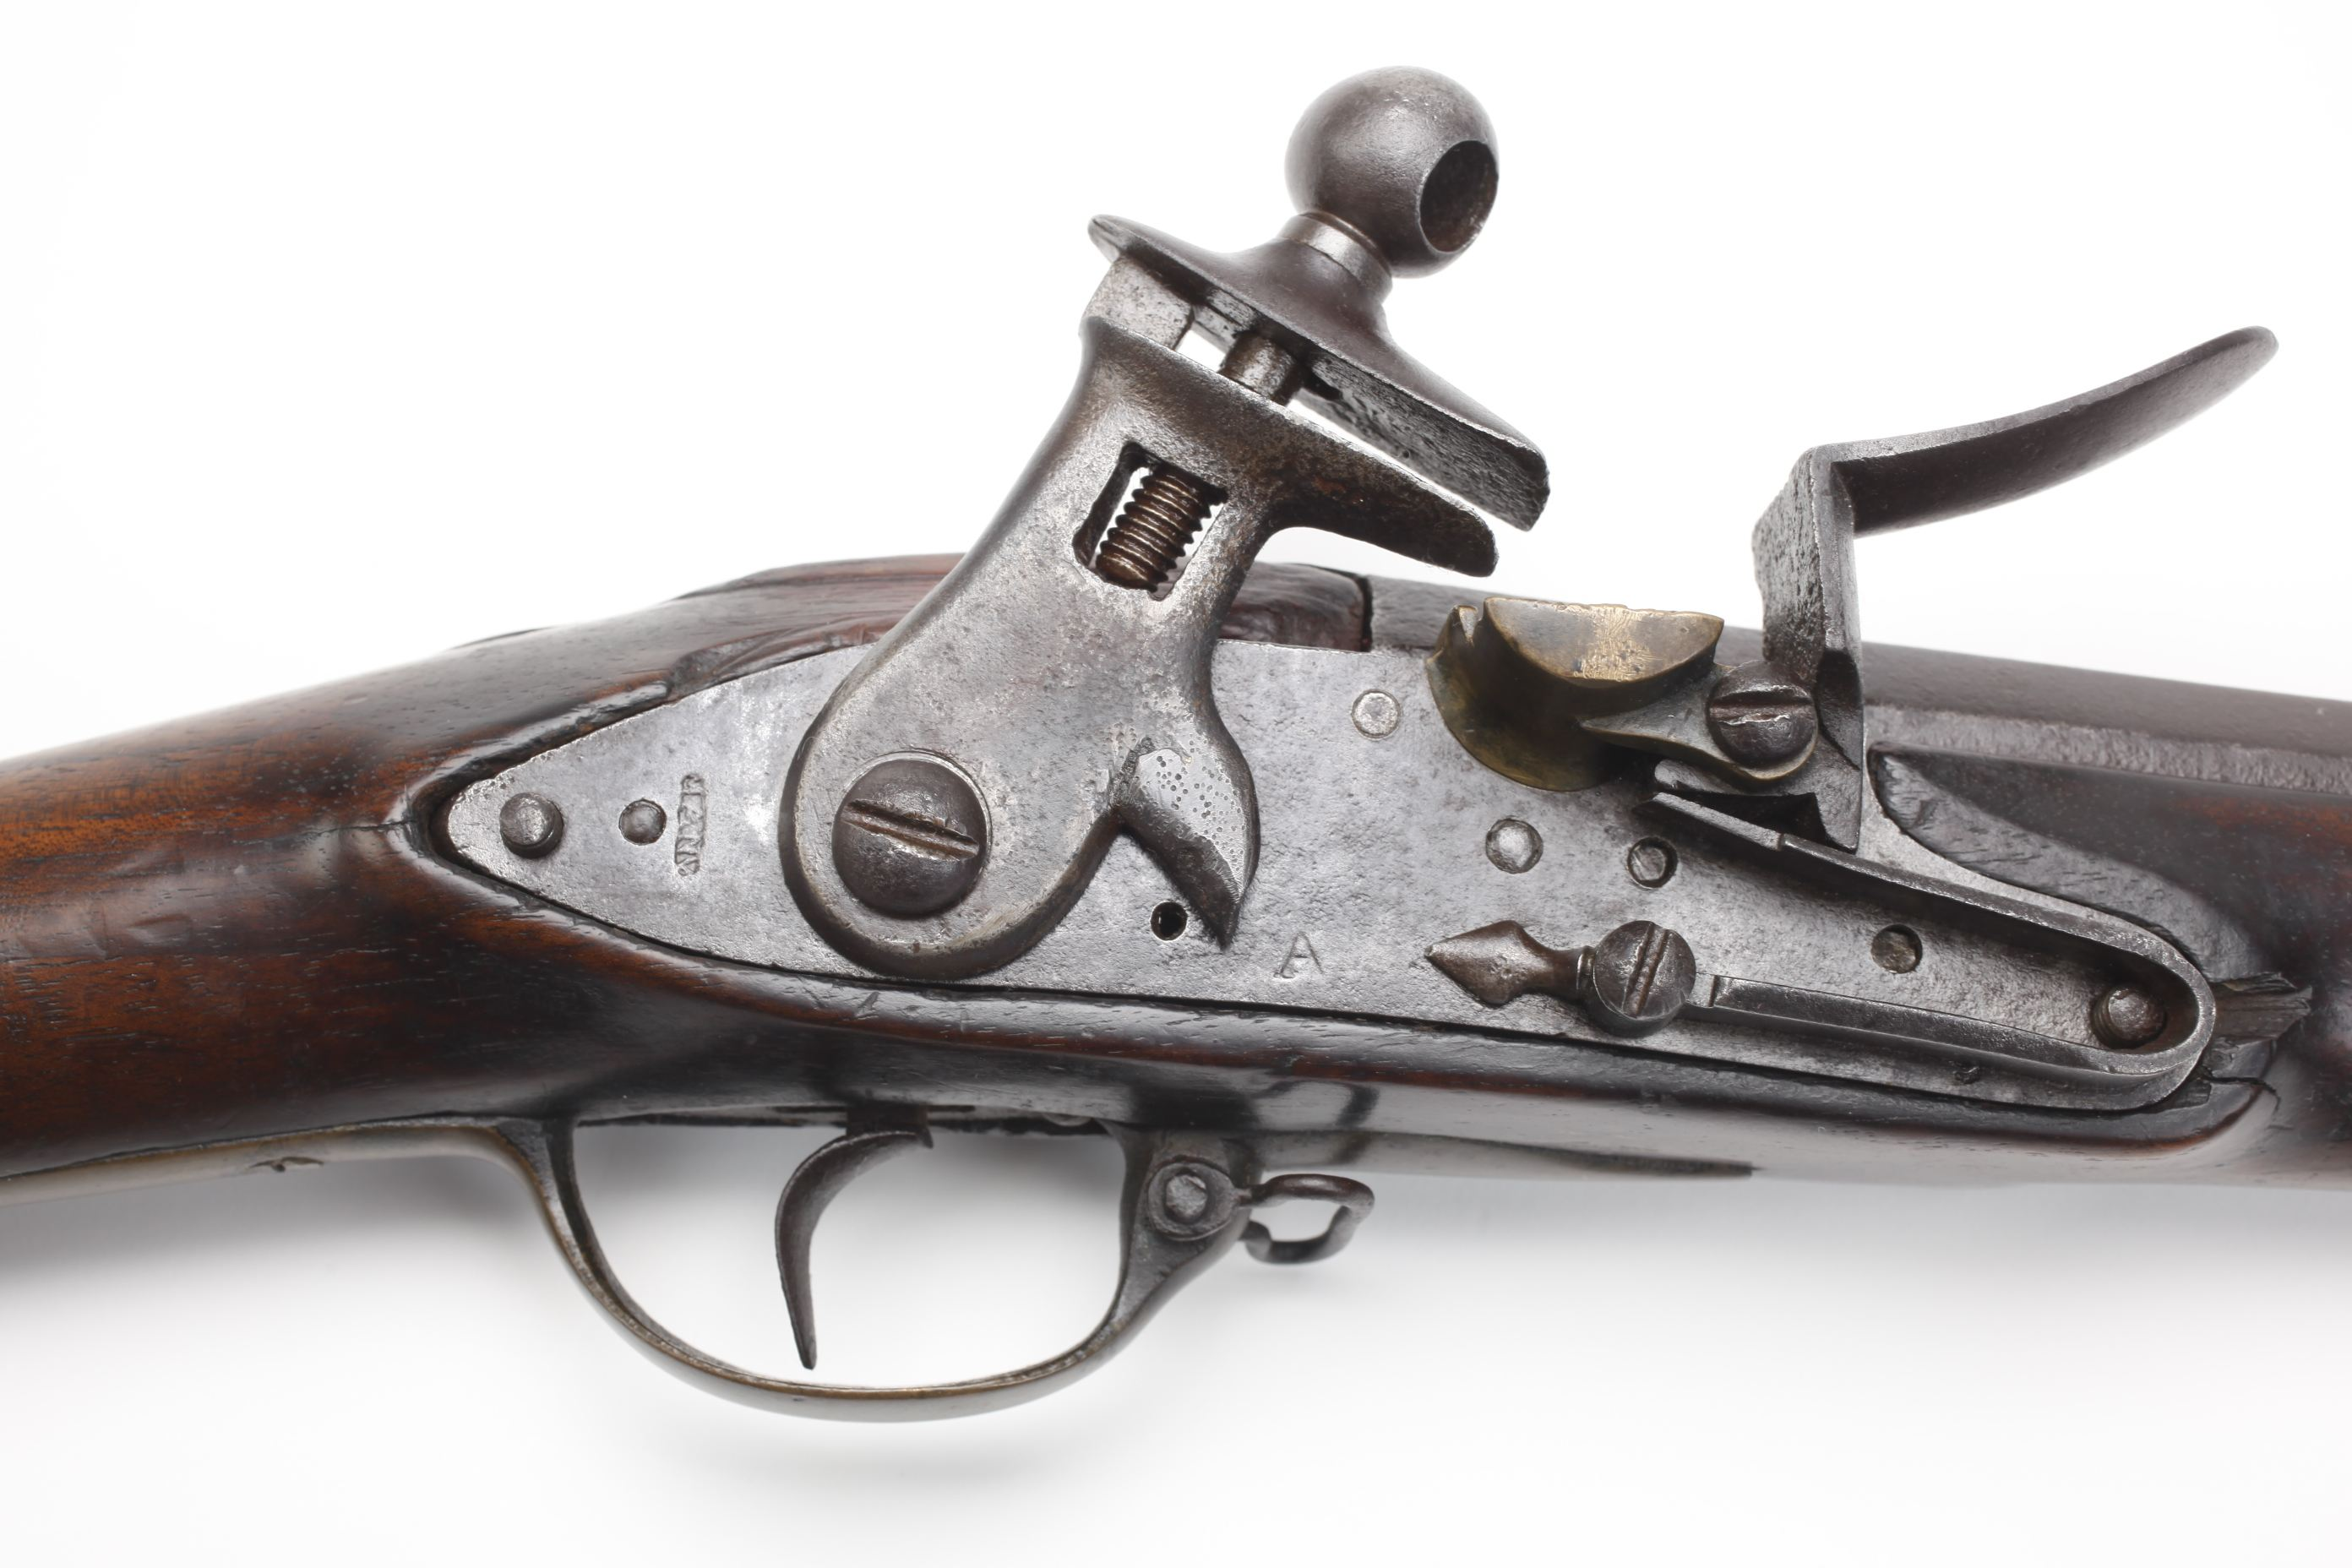 Spanish Model 1803 Flintlock Musket